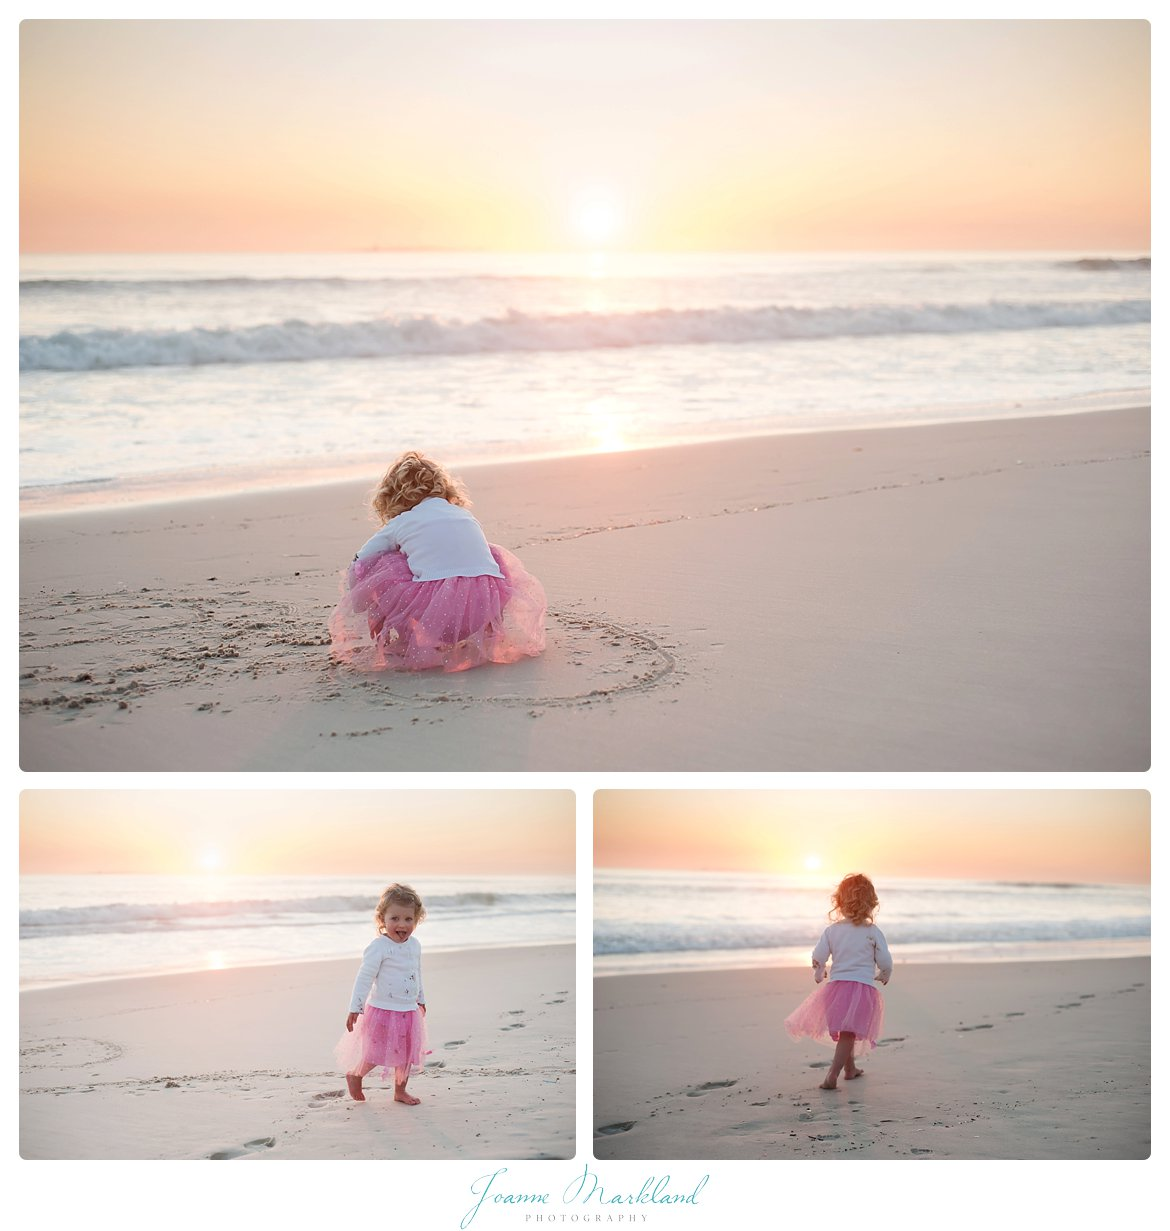 toddler-birthday-portraits-family-photographer-joanne-markland-photography-cape-town-015